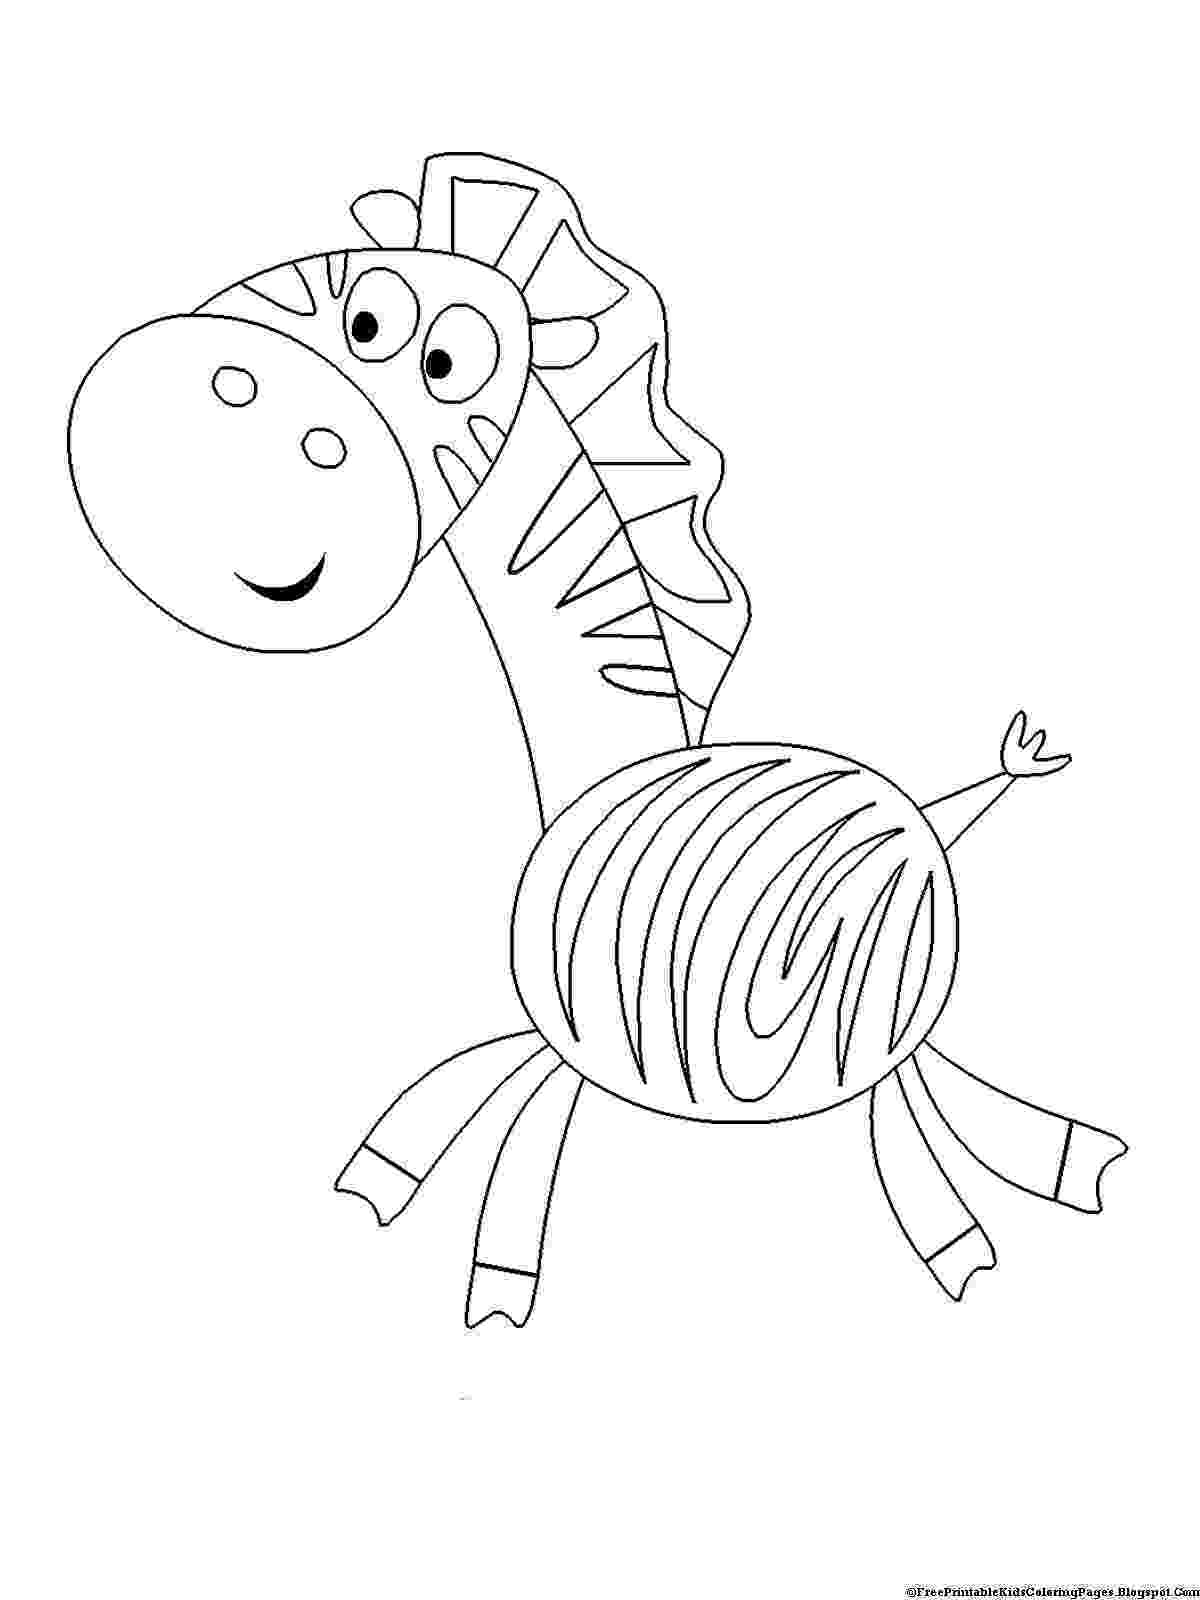 colering pages flintstones coloring pages pages colering